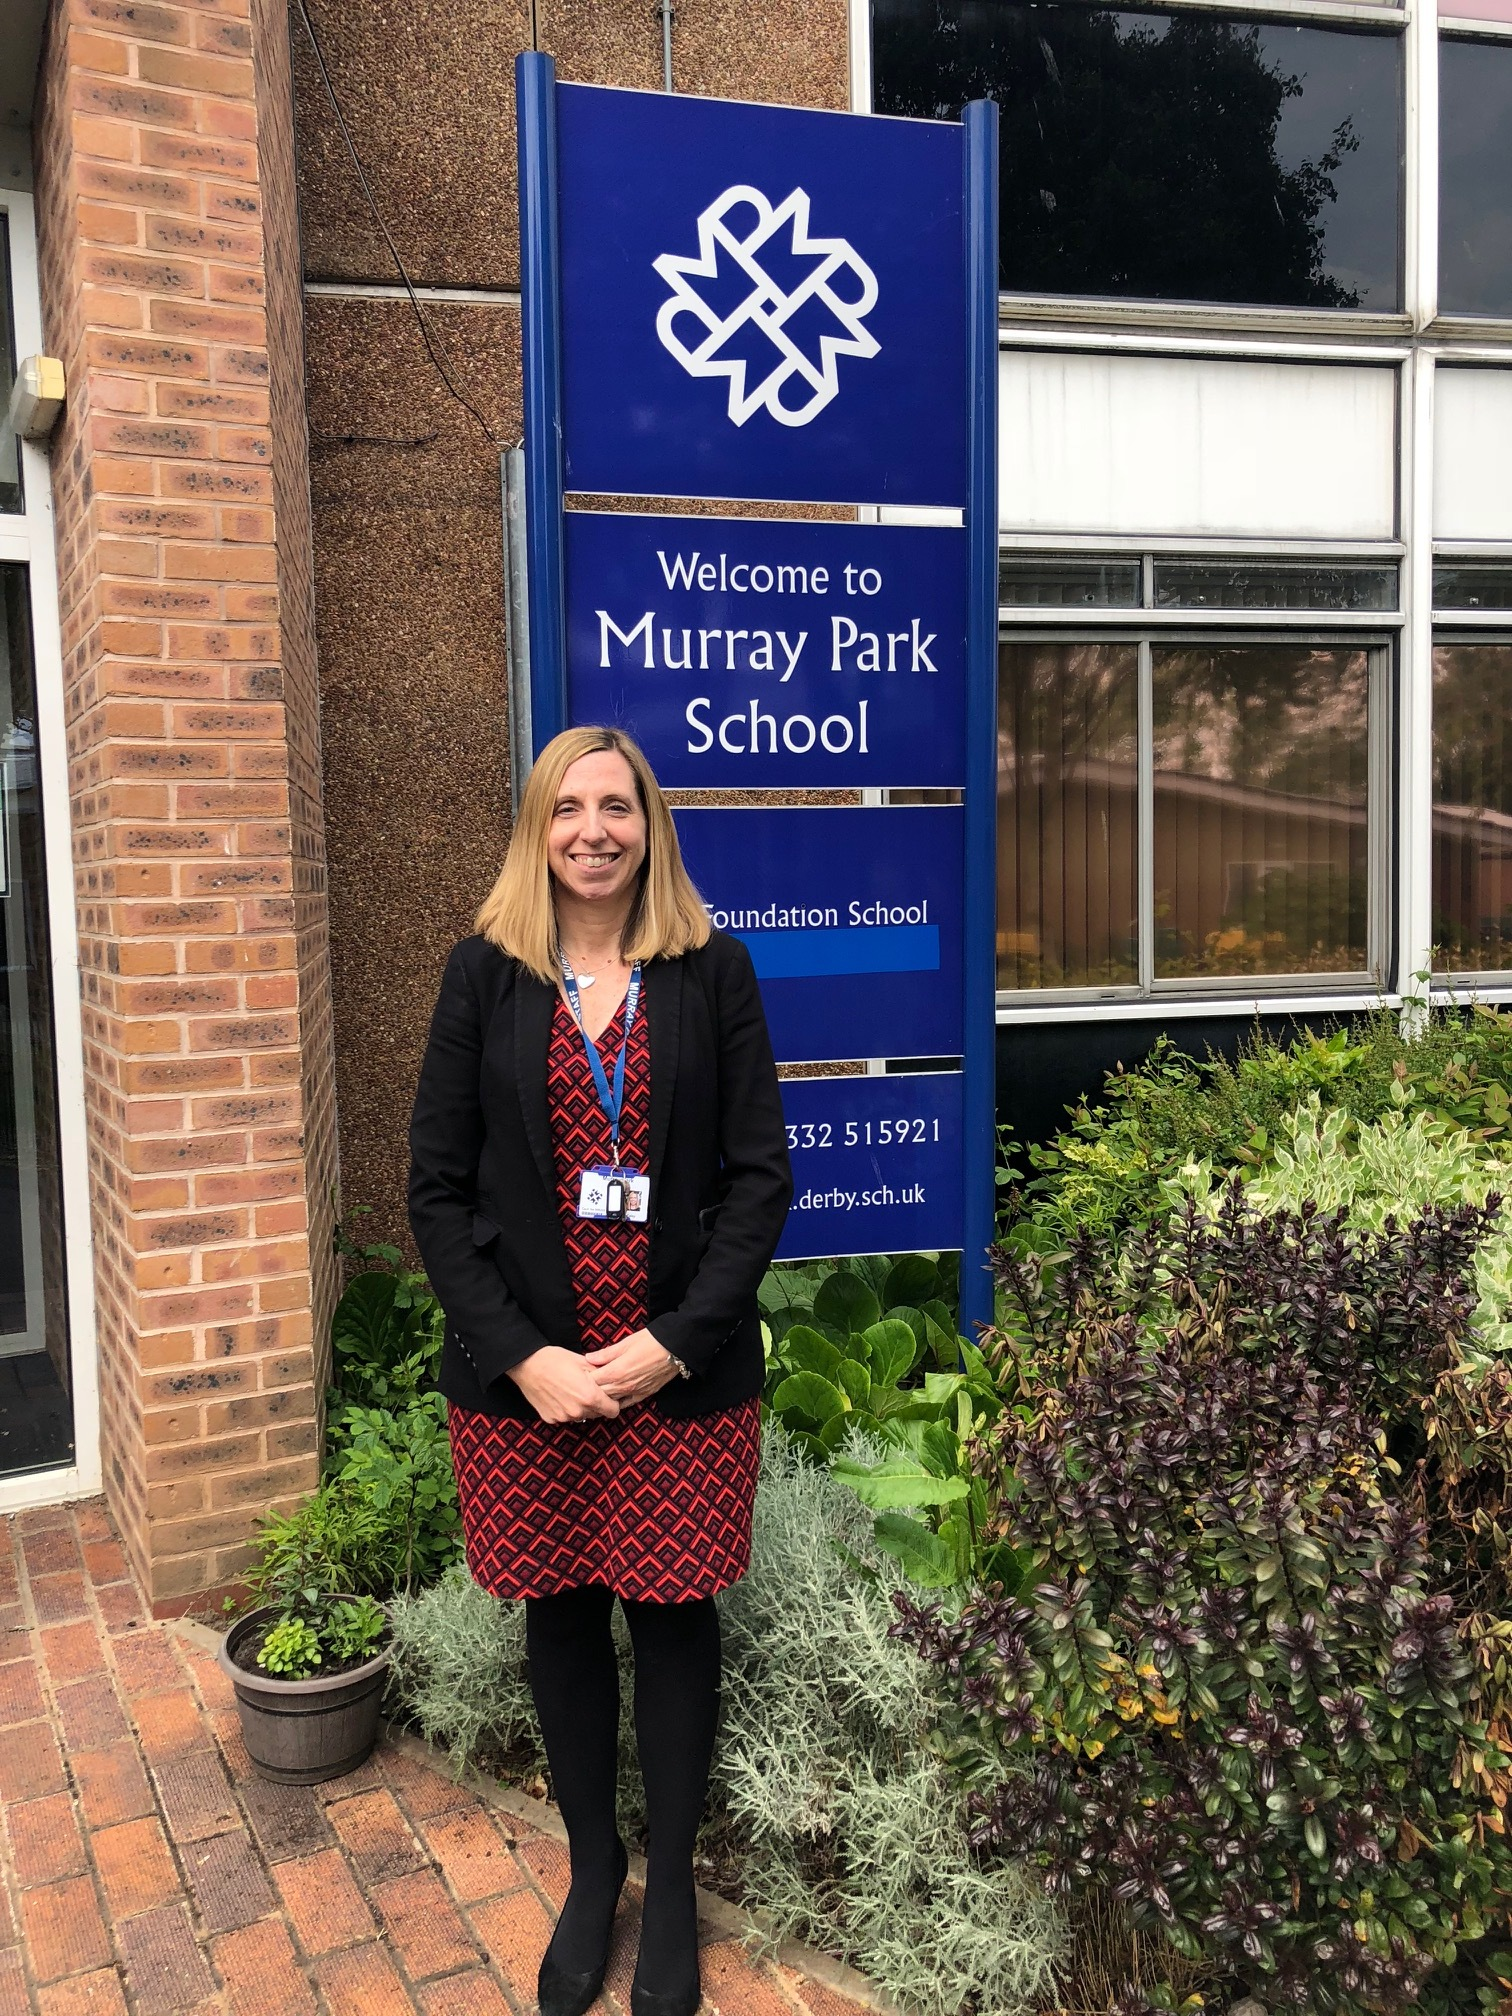 Nicola Caley would like to open a farm at Murray Park School in Derby. Penguin PR: public relations, media and communications